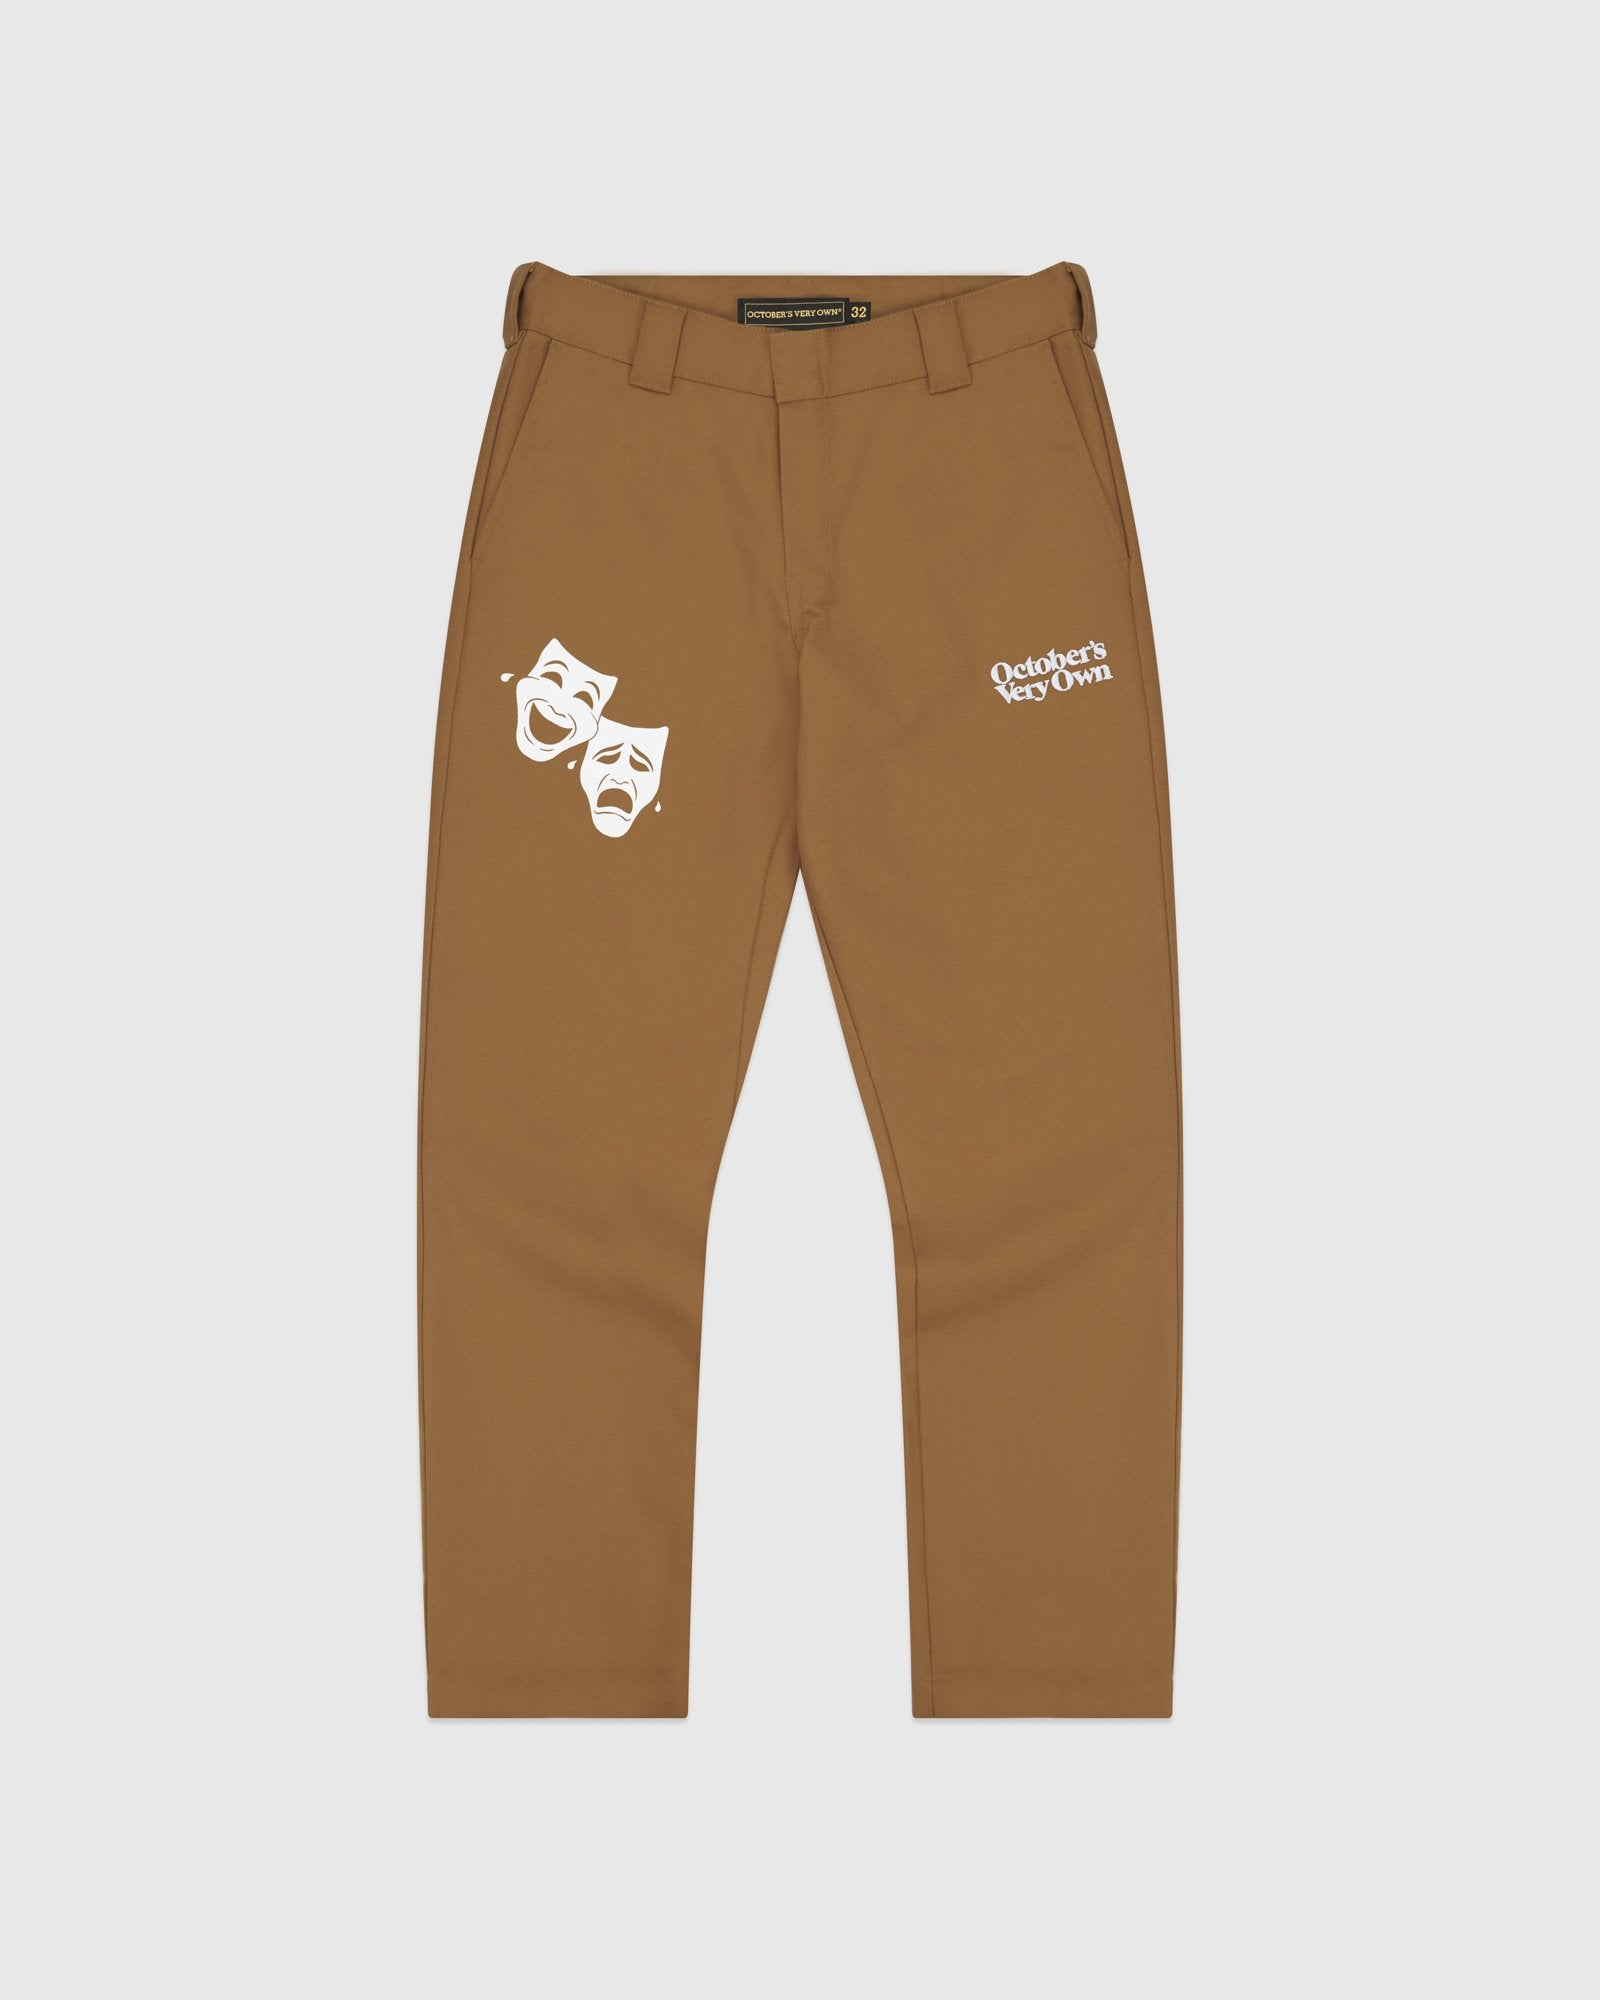 OCTOBER CANVAS PANT - BROWN IMAGE #1